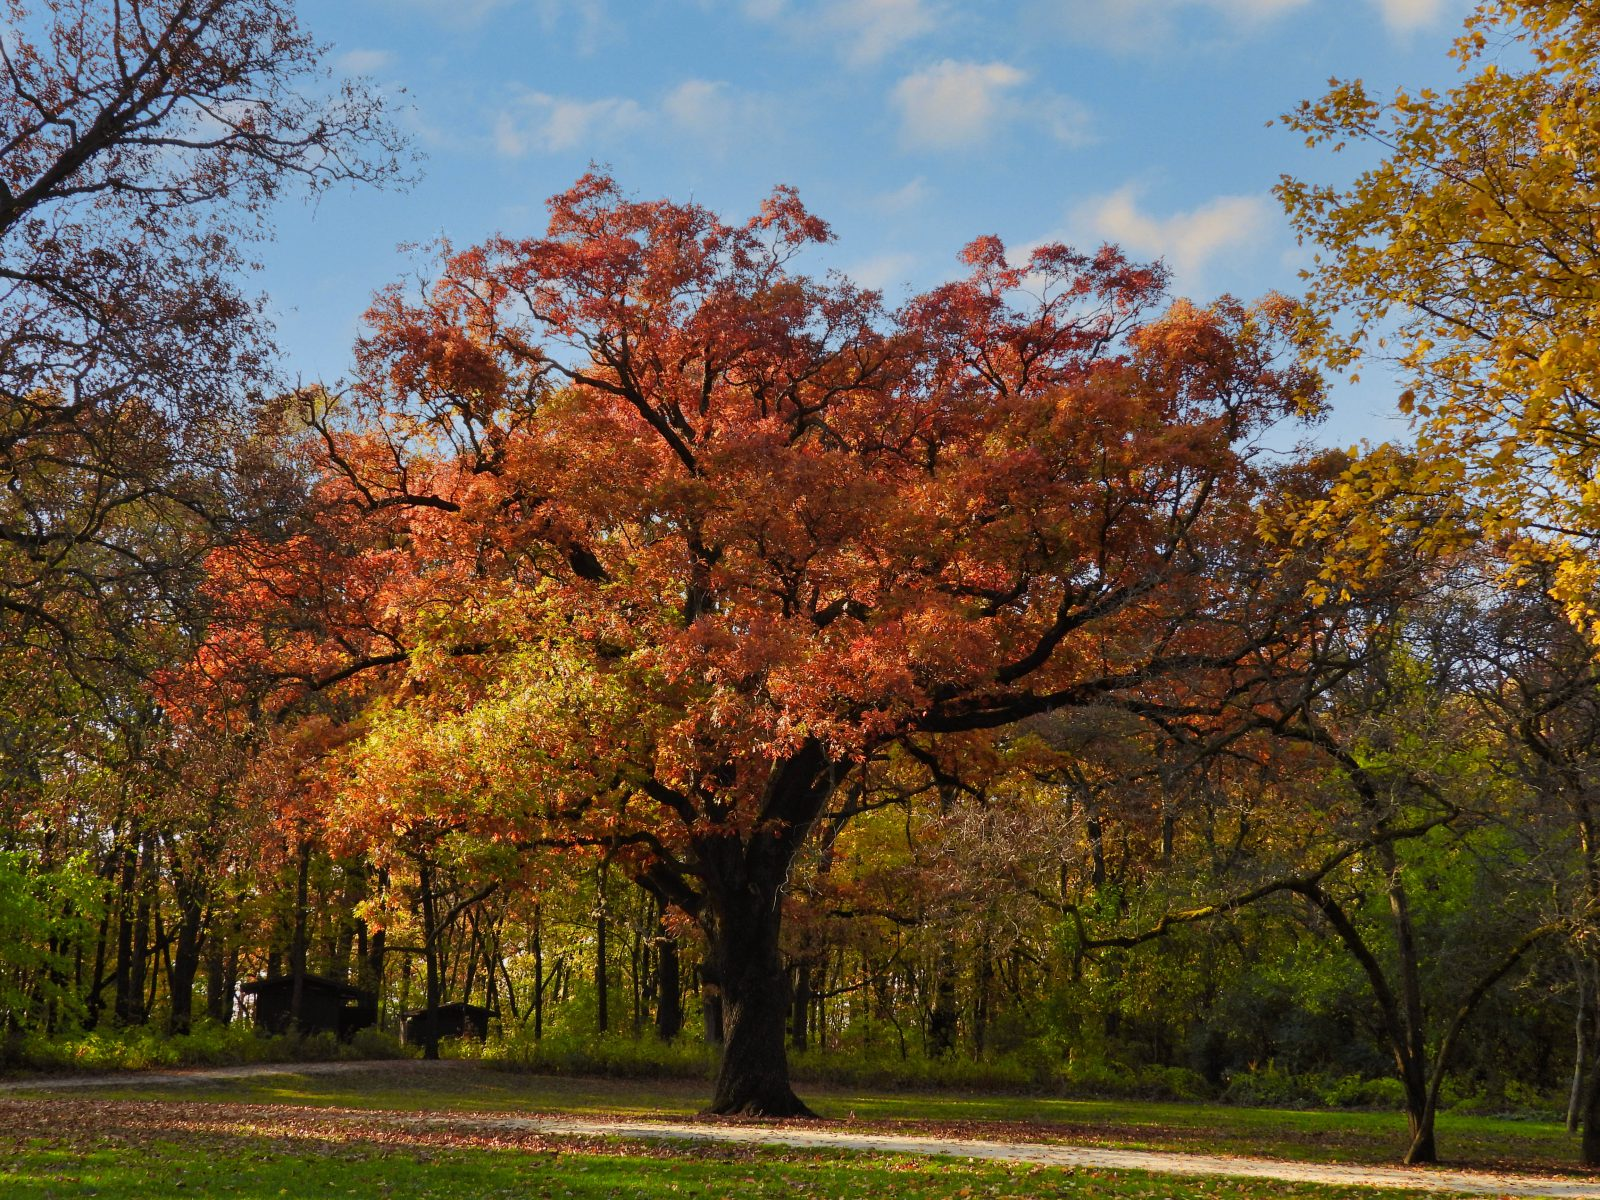 Glowing Red, Orange and Yellow Oak Tree in Late Fall with Bright Blue Sky with a Few White Clouds Above Beautiful Autumn Landscape Scenic View in Wooded Forest